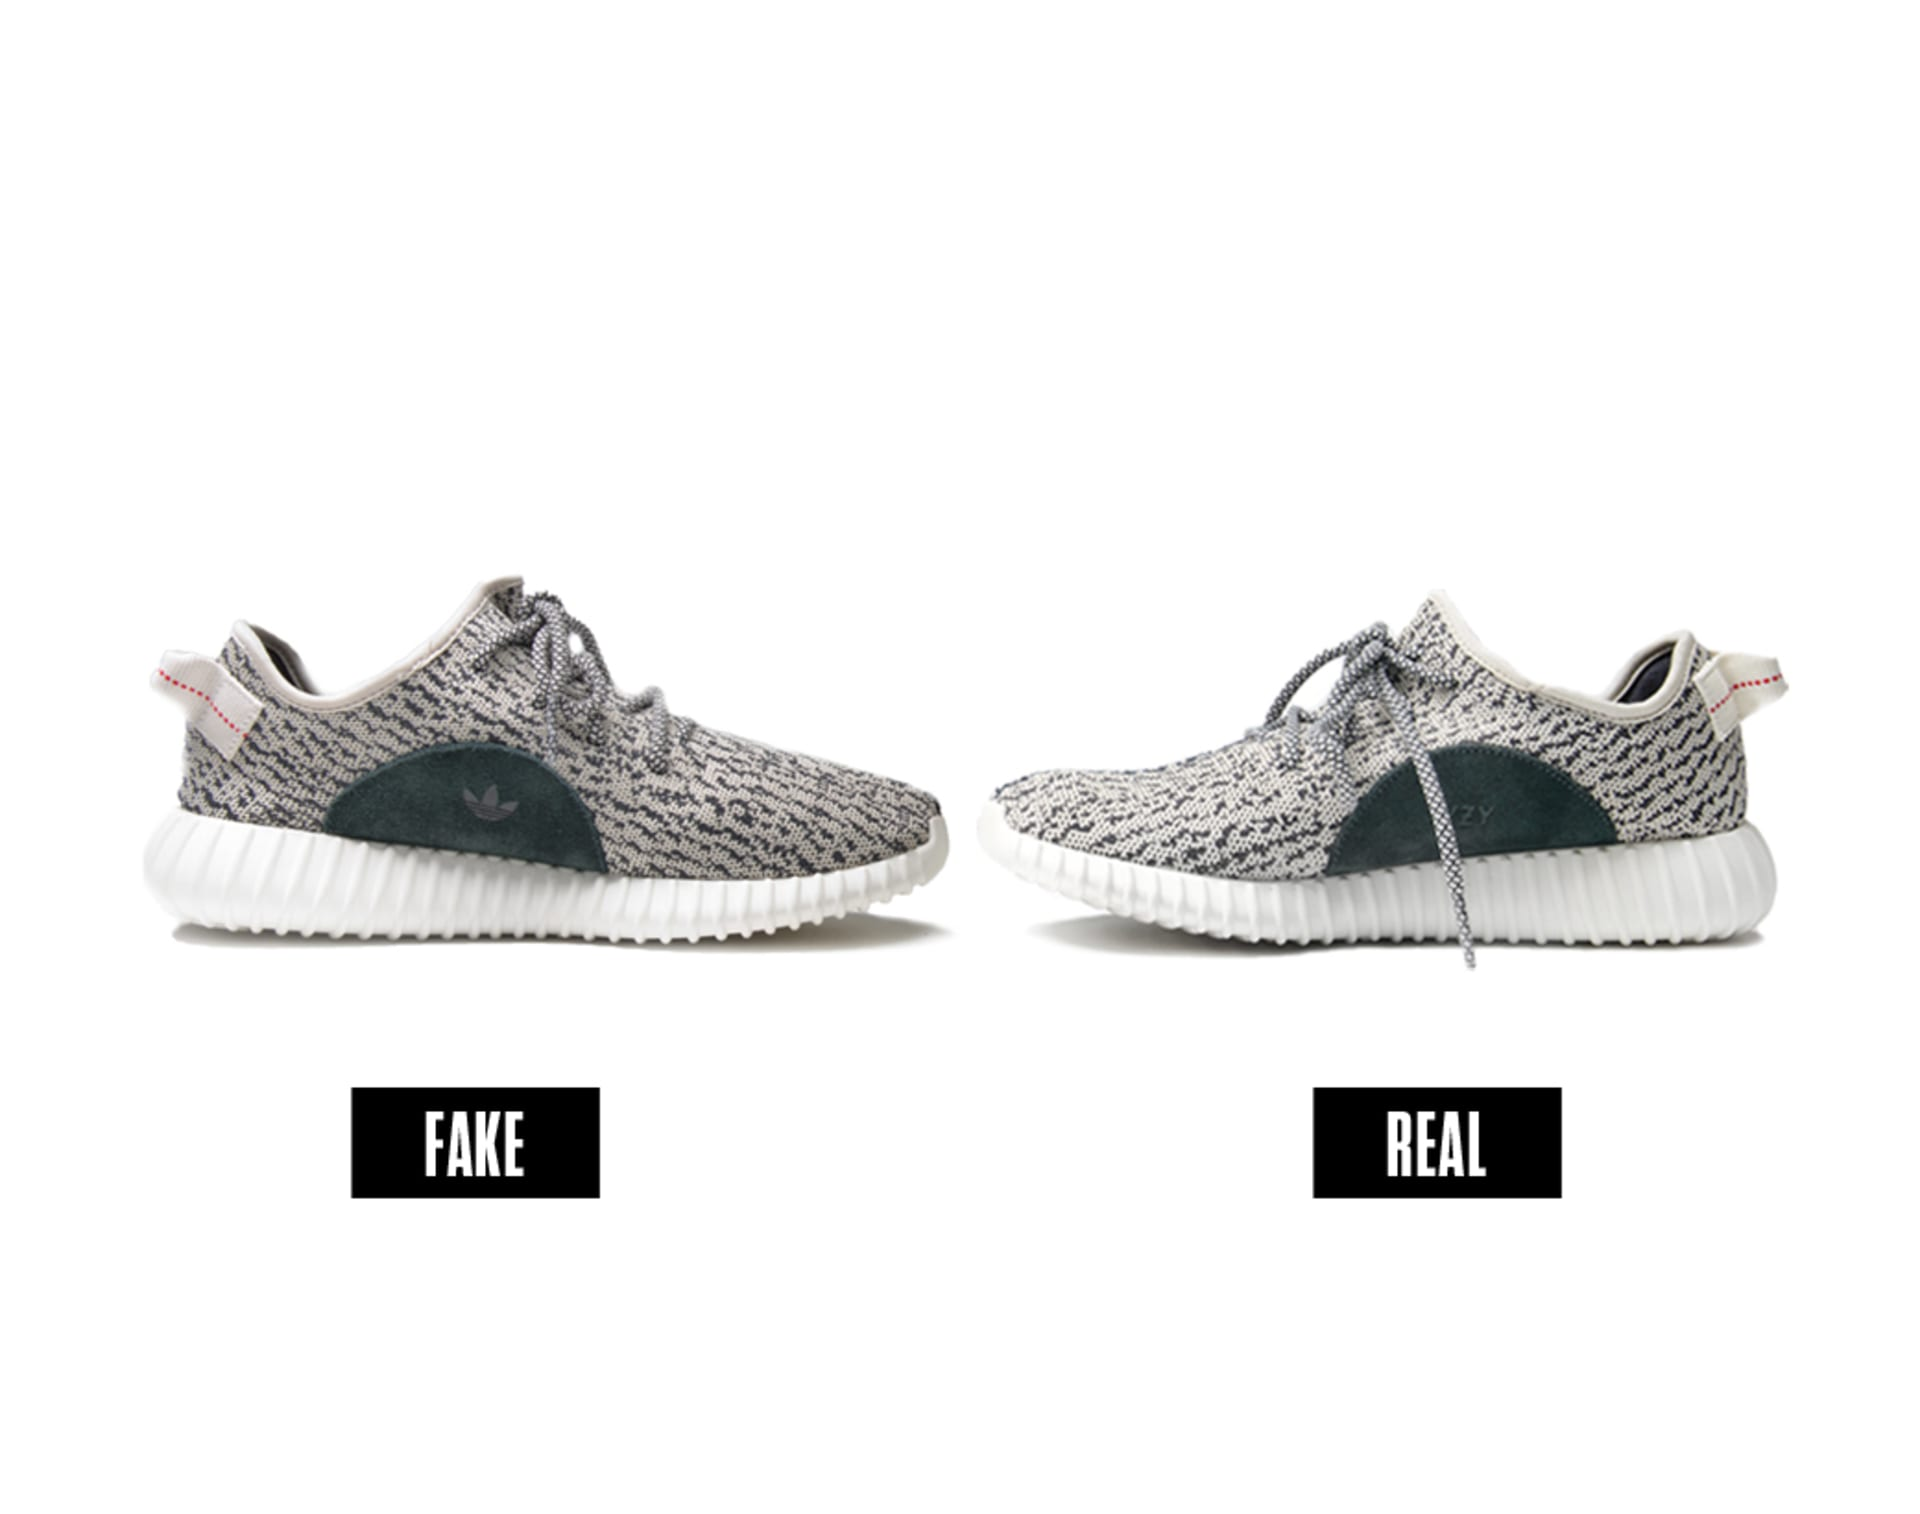 081a425c3e74d Fake vs. Real Yeezy 350 Boosts. Photo by Liz Barclay.